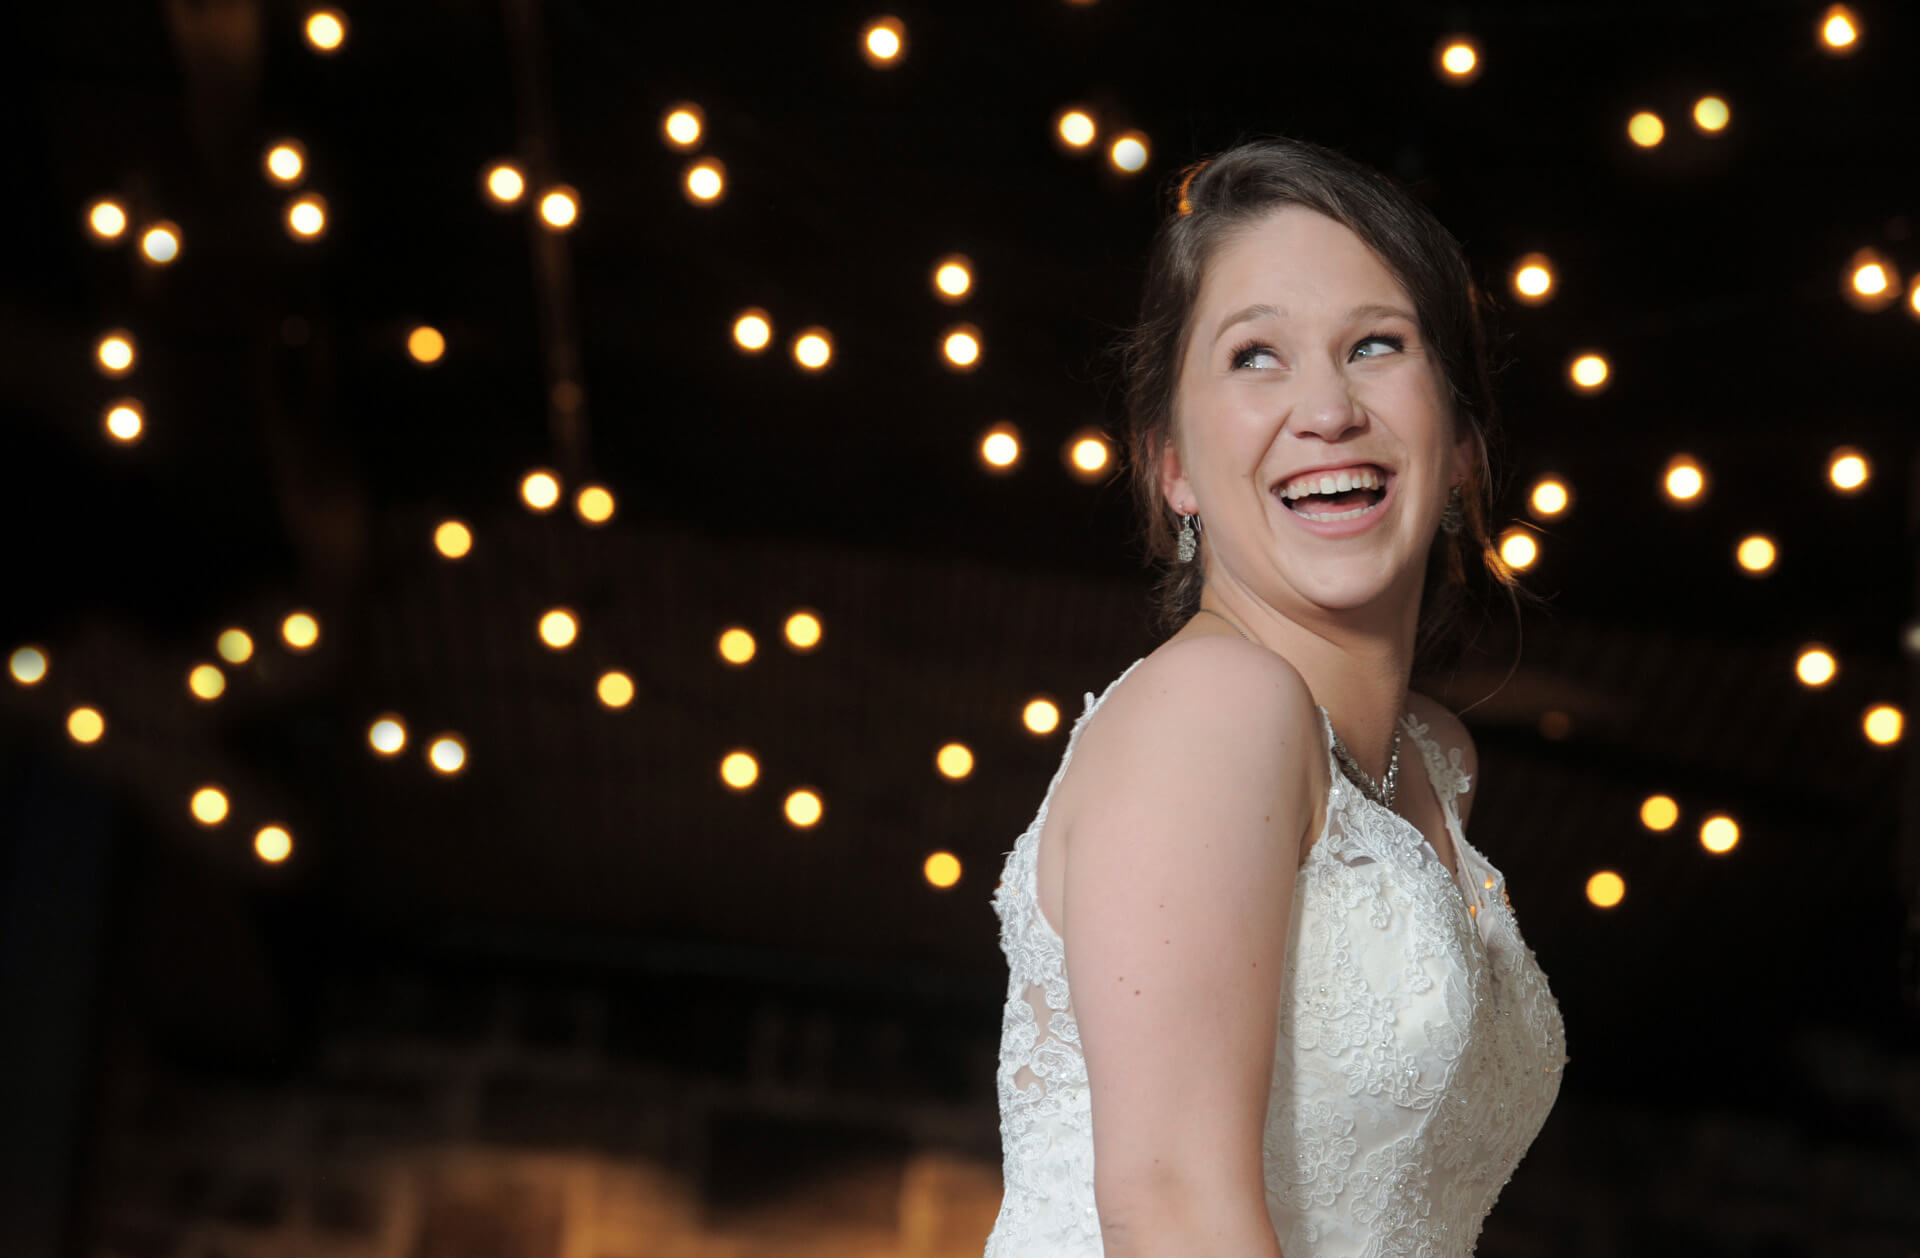 Epic Wedding portrait showing the bride laughing during her wedding at Weller's Raisin Room in Saline, Michigan.